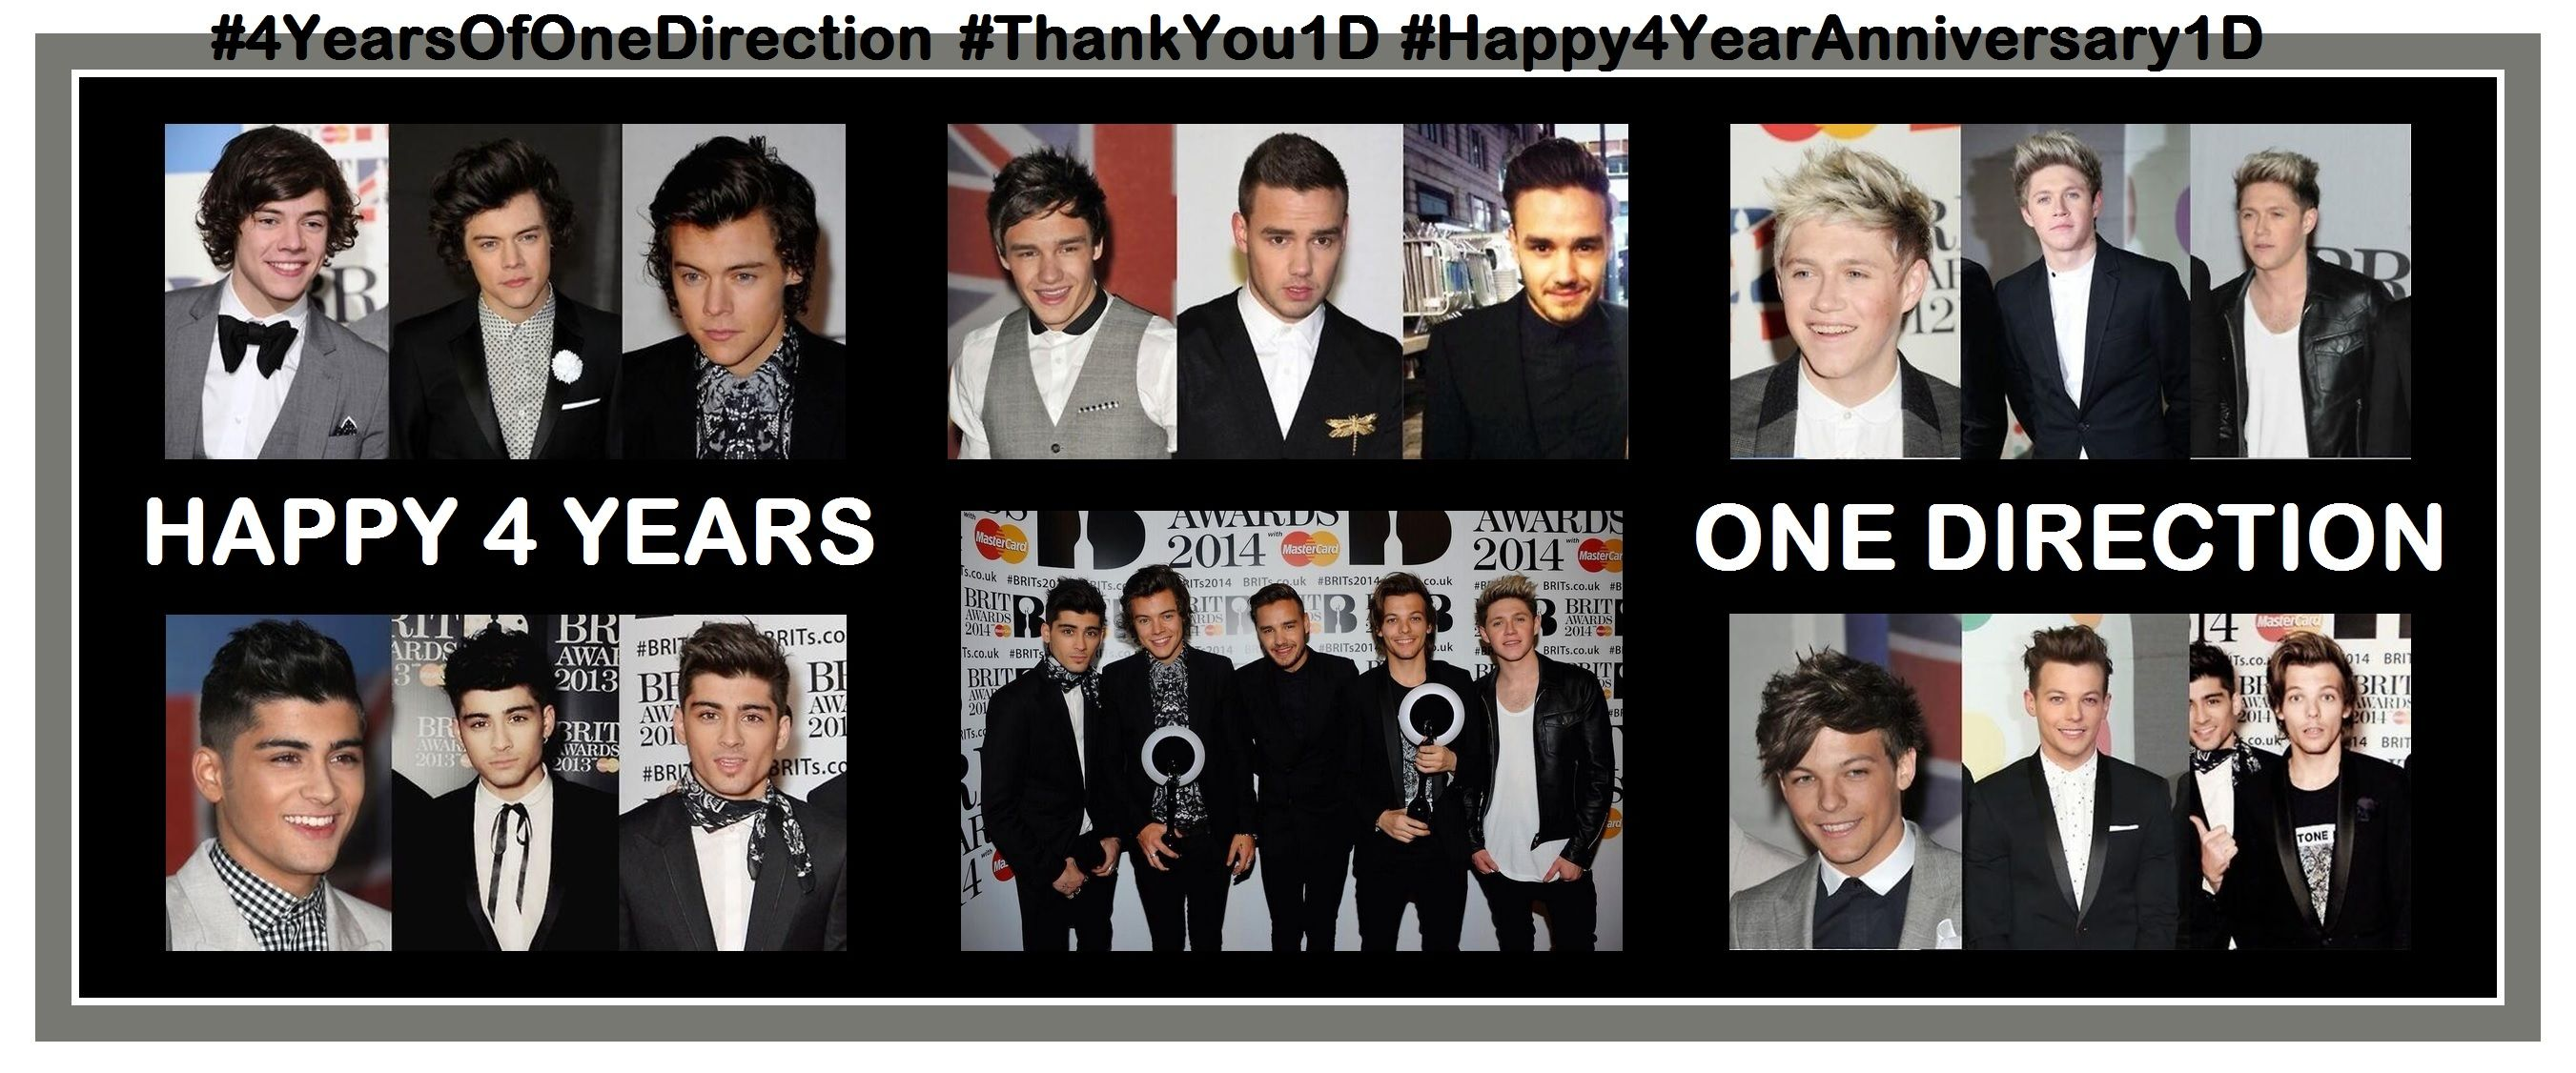 Happy 4 Years One Direction! (July 23rd, 2014)